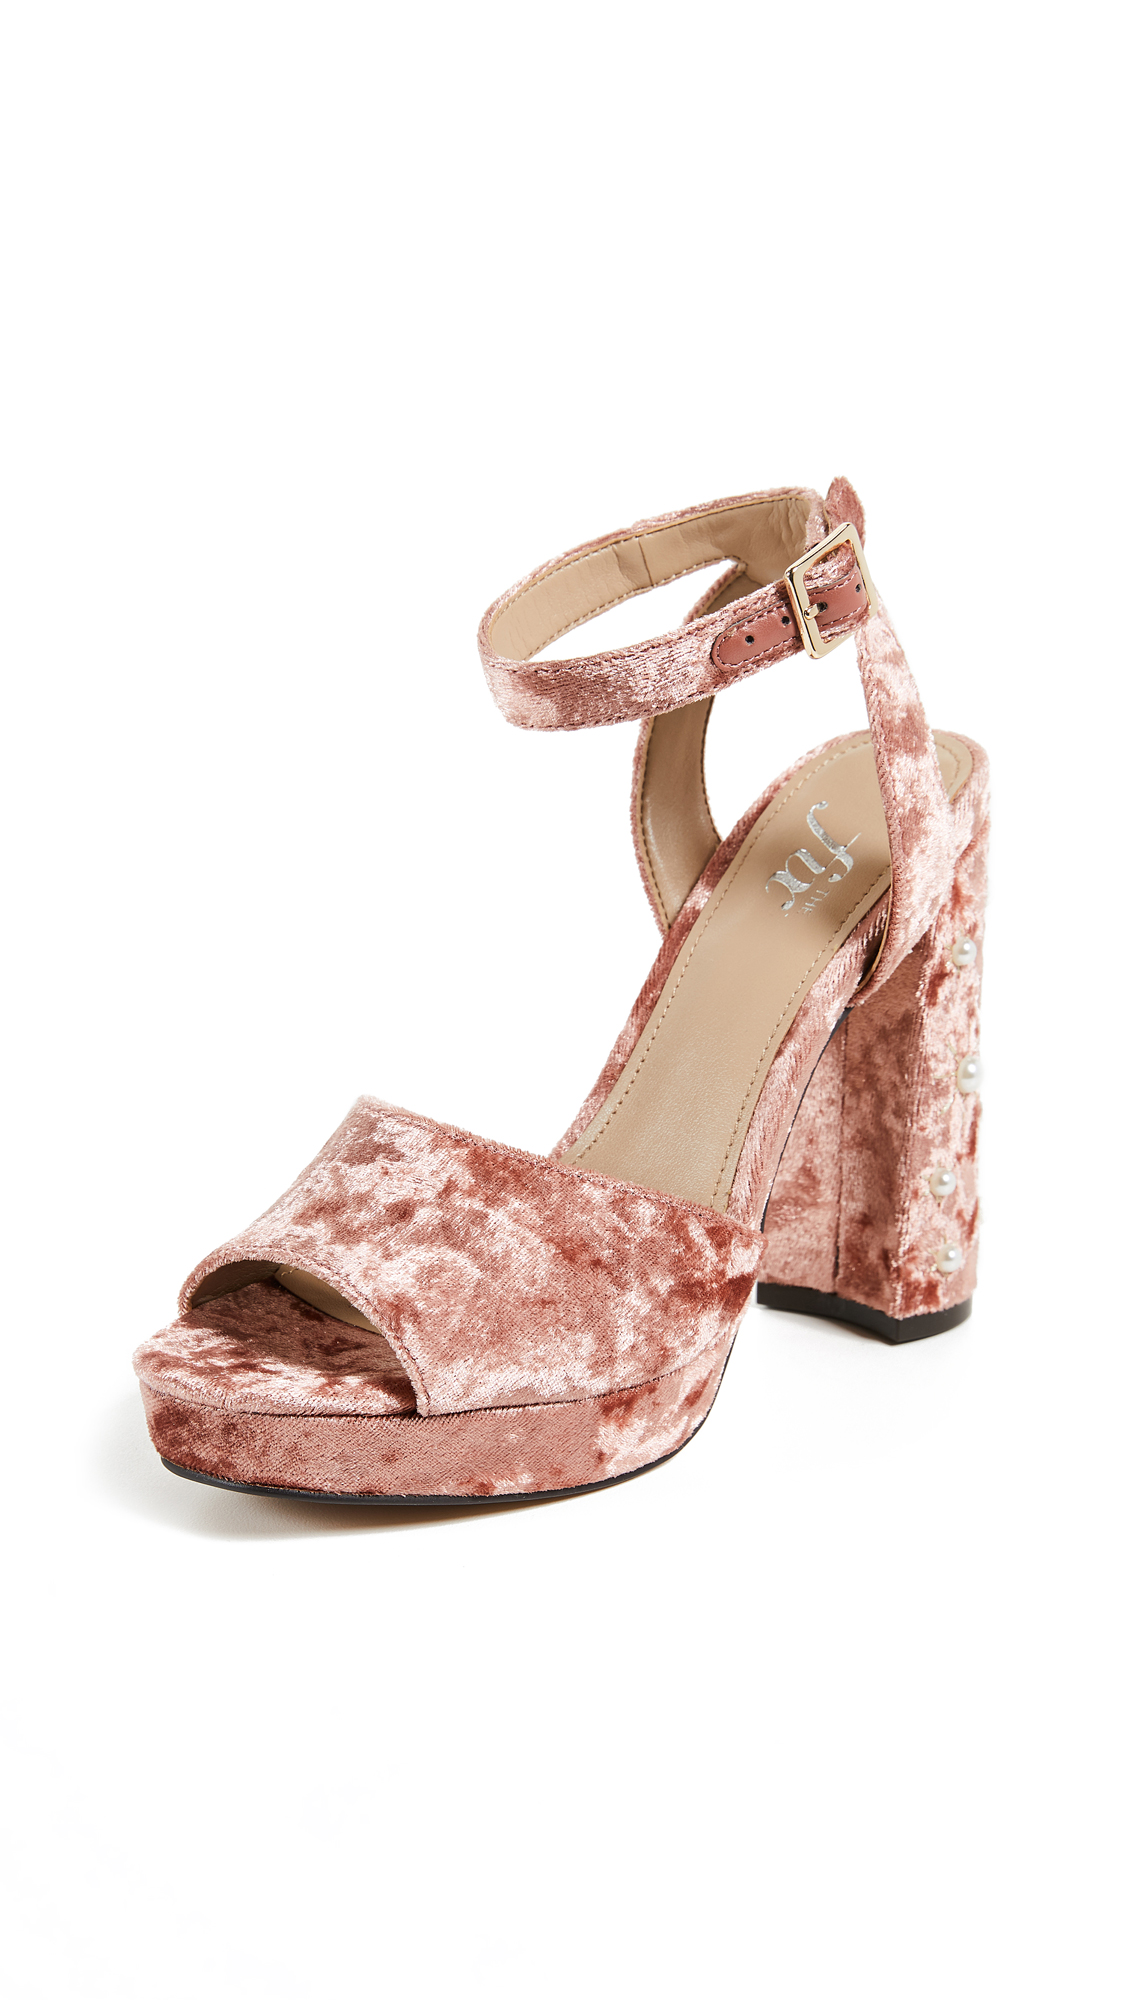 The Fix Genevieve Sandals - Sorbet